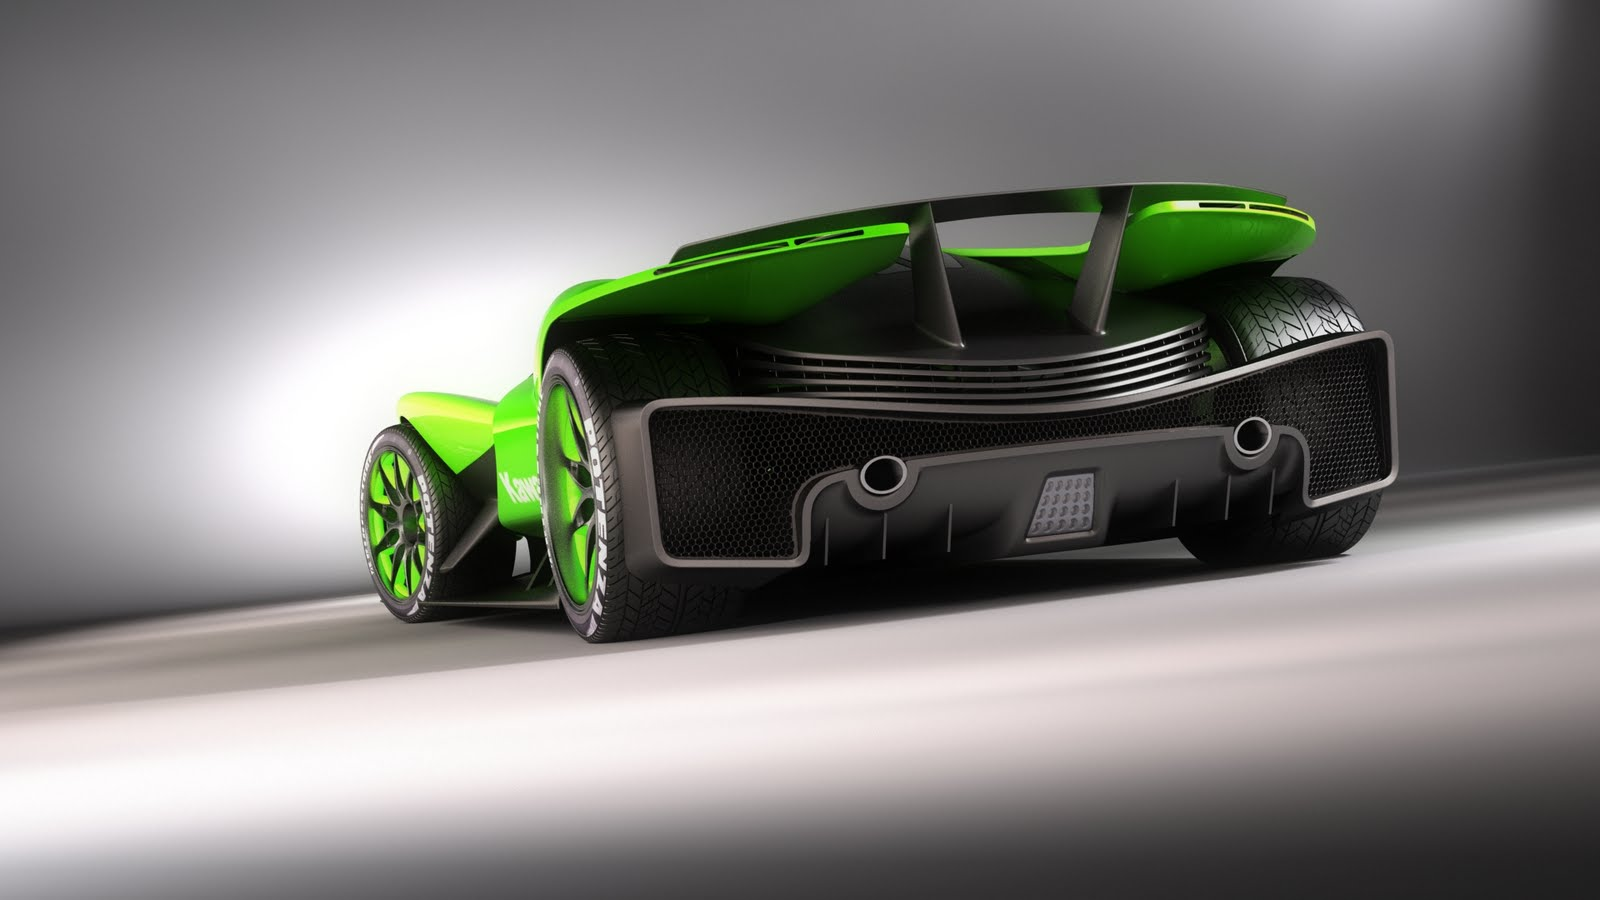 2011 Kawasaki ZX 770R Concept 2 2011 Kawasaki ZX 770R Concept to Be Upgraded Based on KTM X BOW